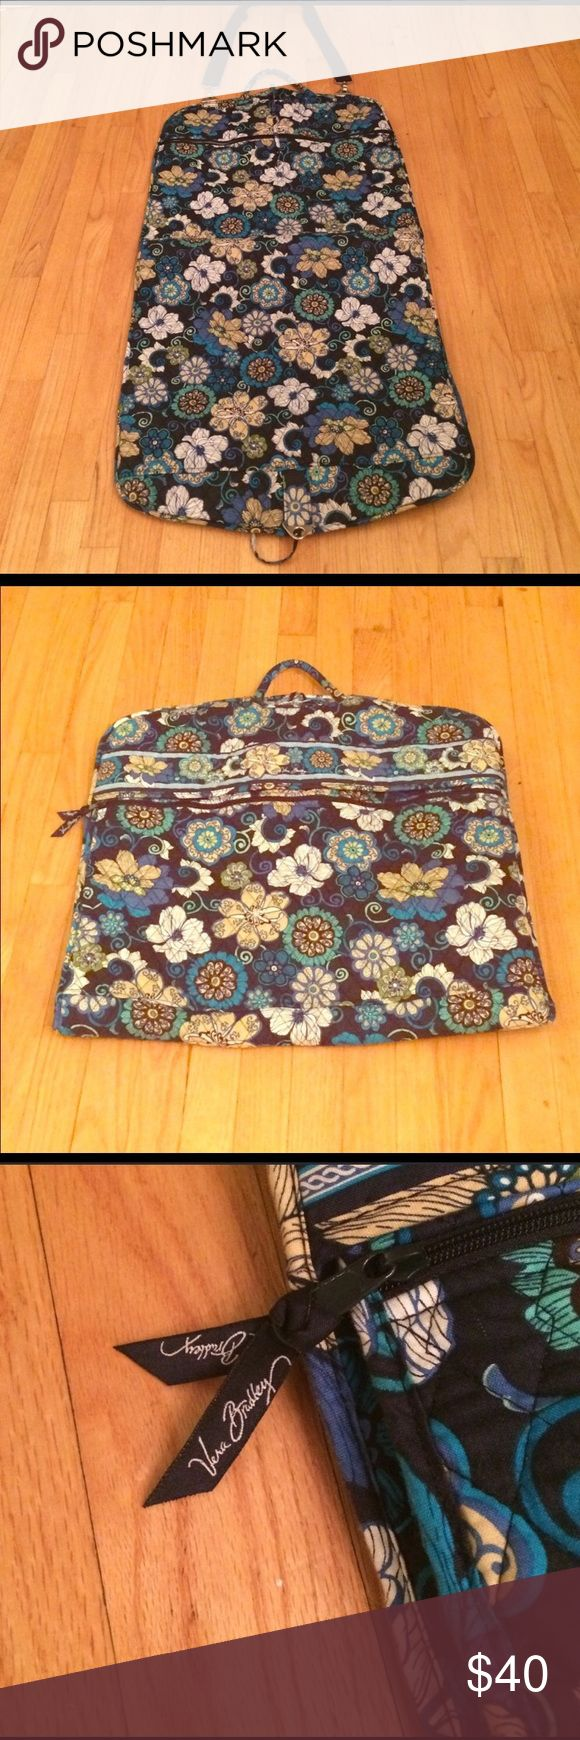 Vera Bradley garment bag Vera Bradley garment bag, gently used but in fantastic condition! Straps and hanger included! Vera Bradley Bags Travel Bags